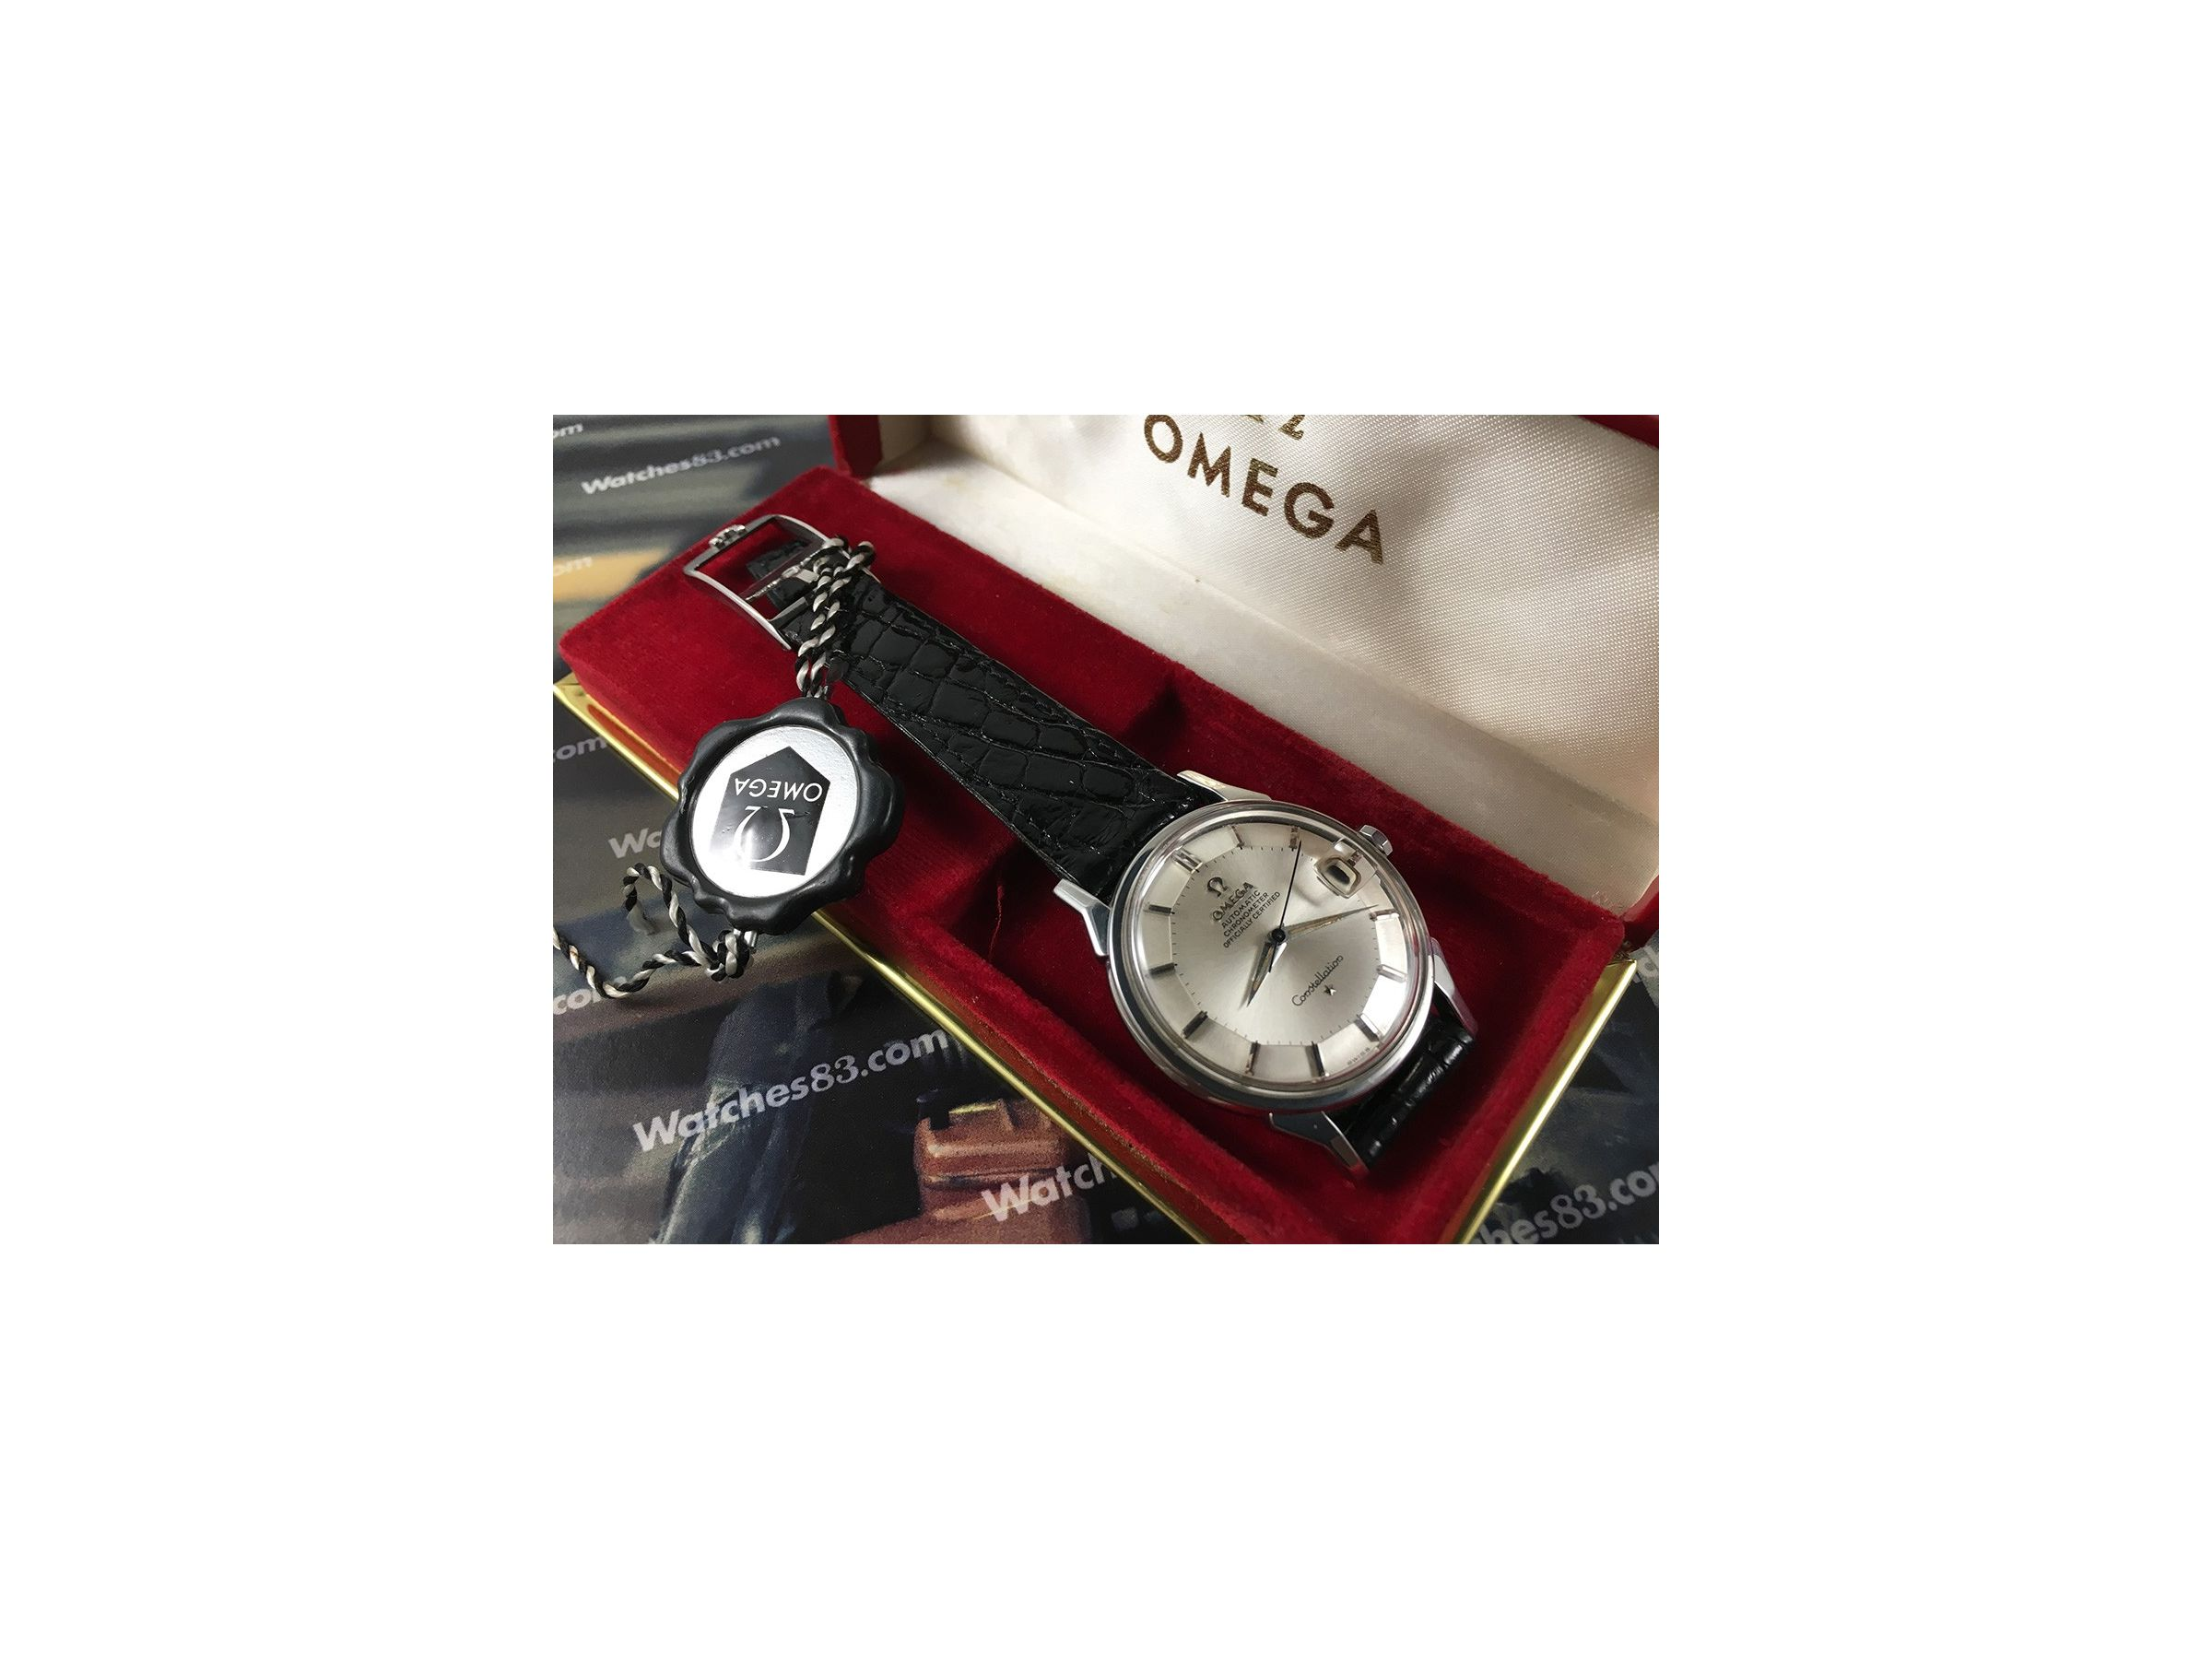 Pie Pan Omega Constellation Chronometer Officially Certified Cal 561